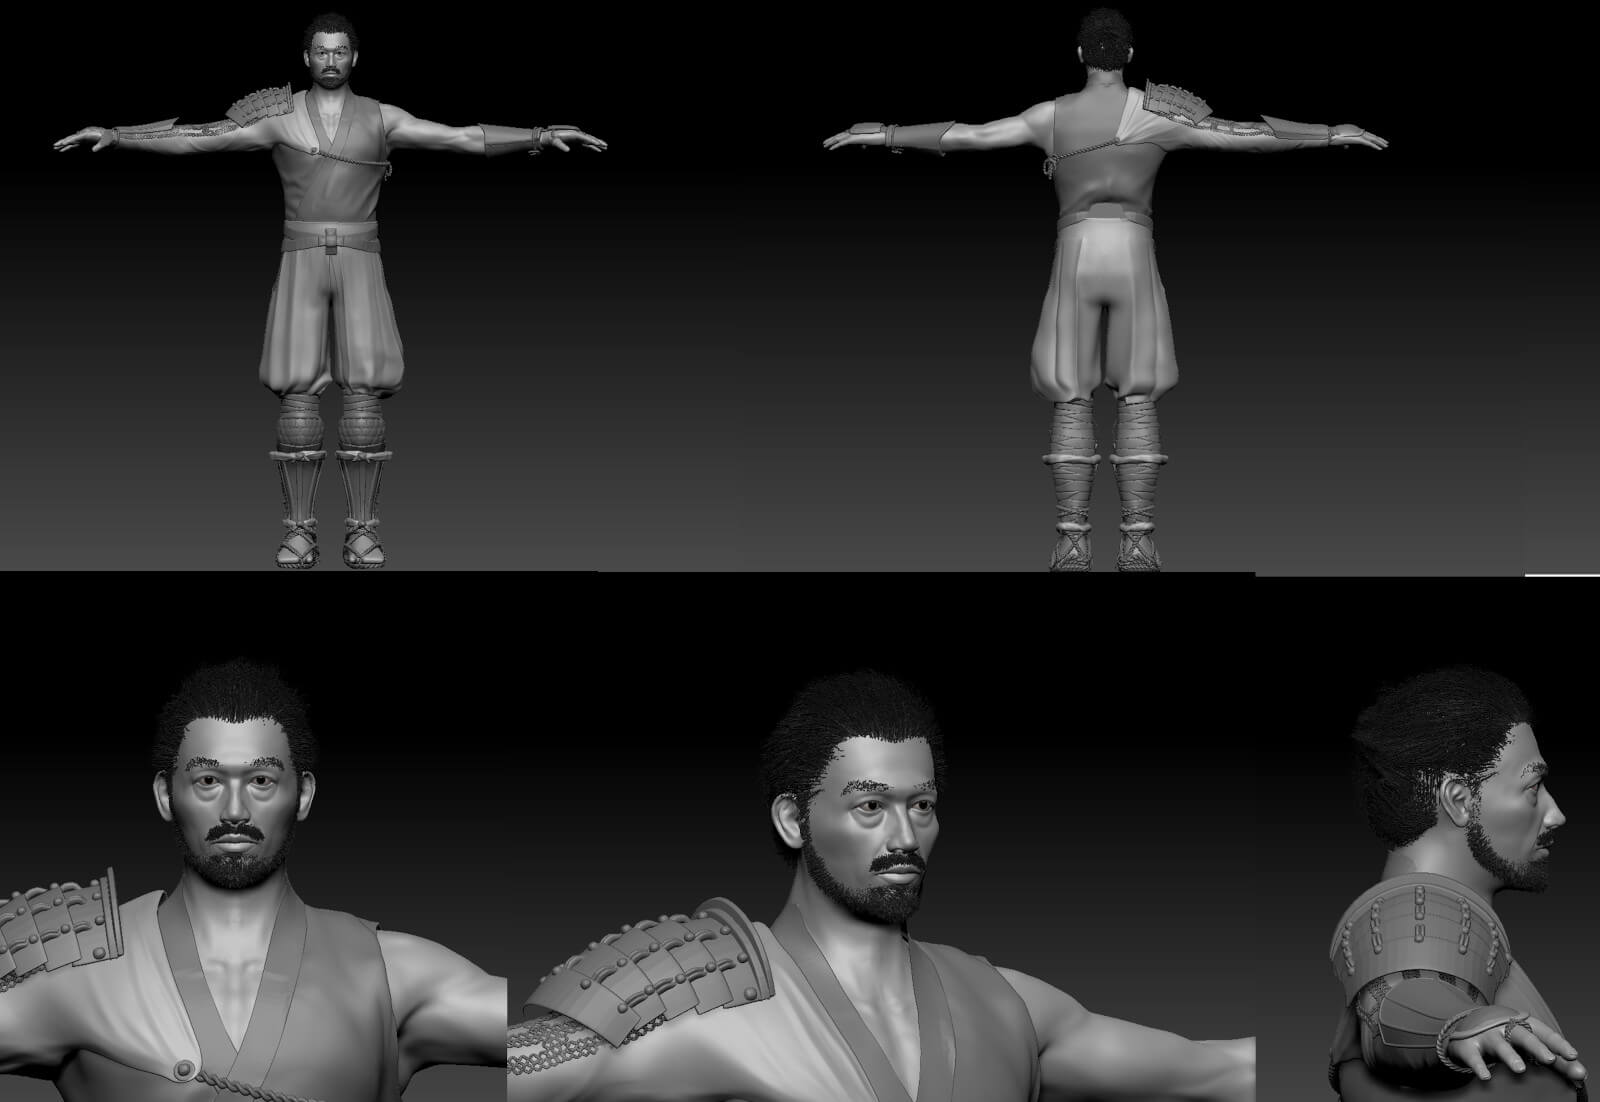 3D character model from different angles